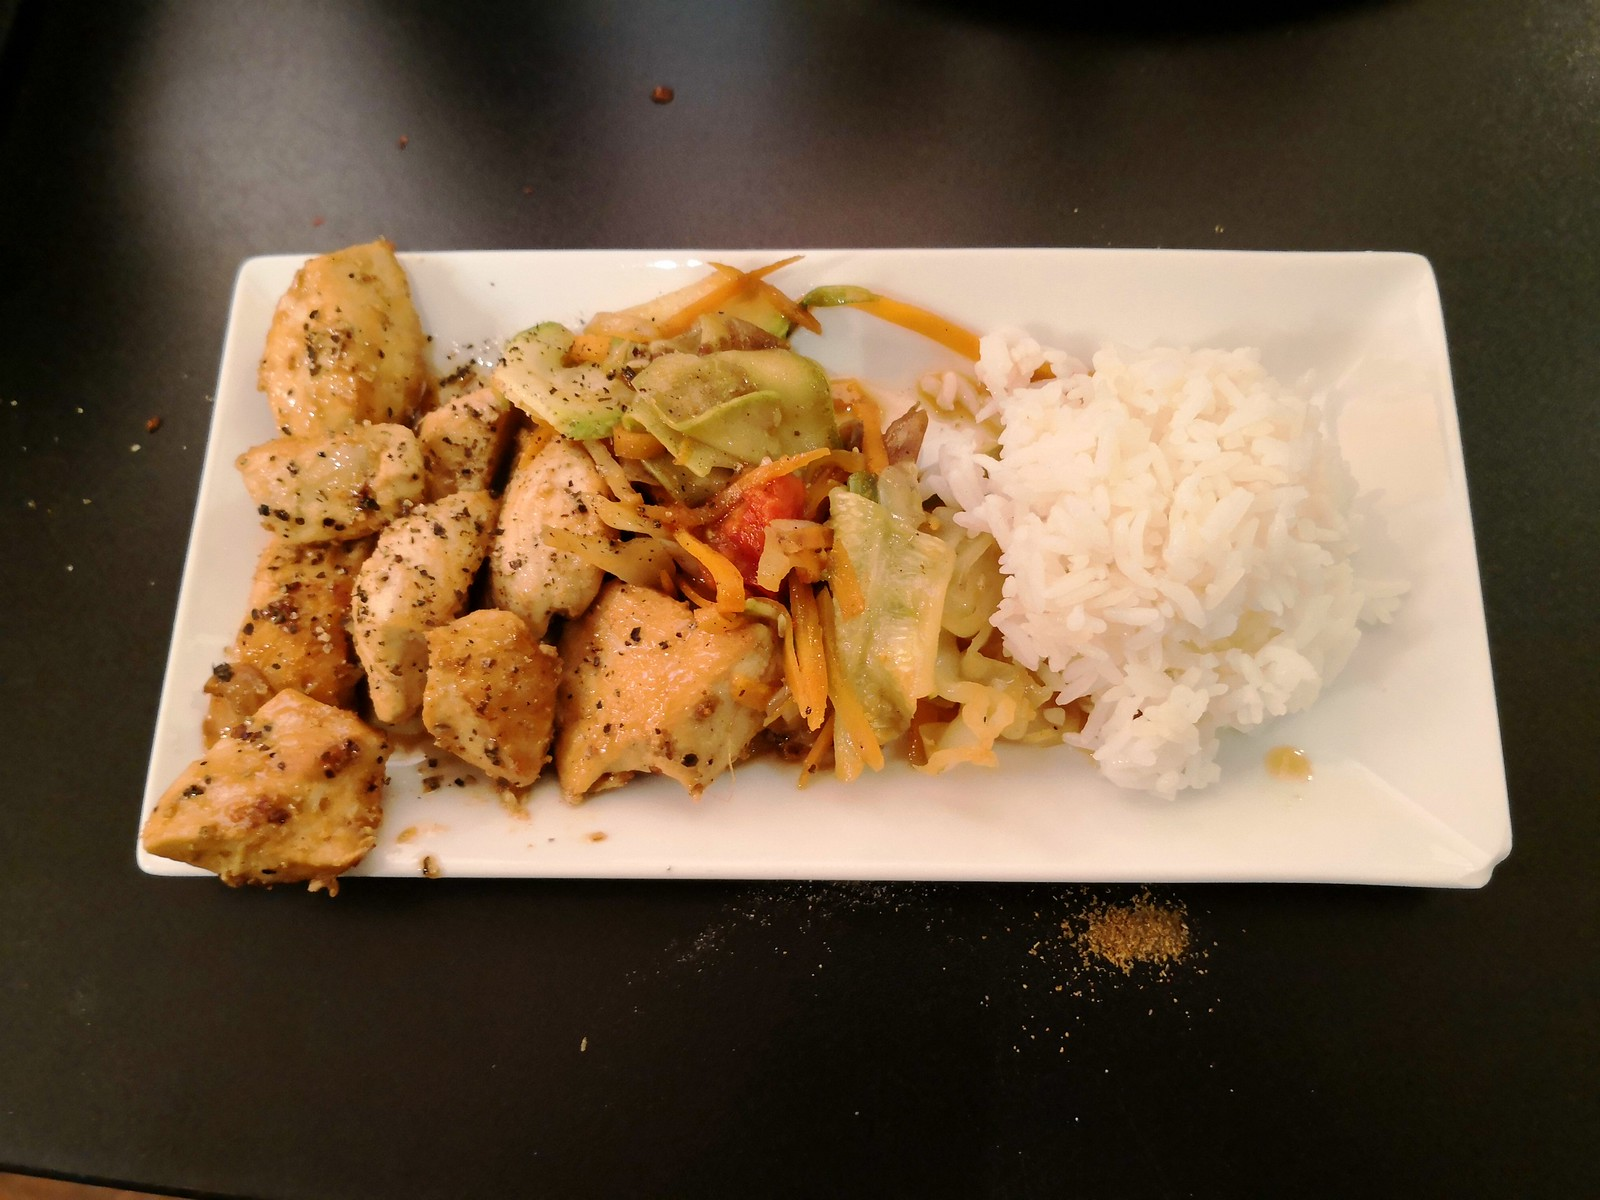 Chicken and vegetable teppanyaki with steamed rice